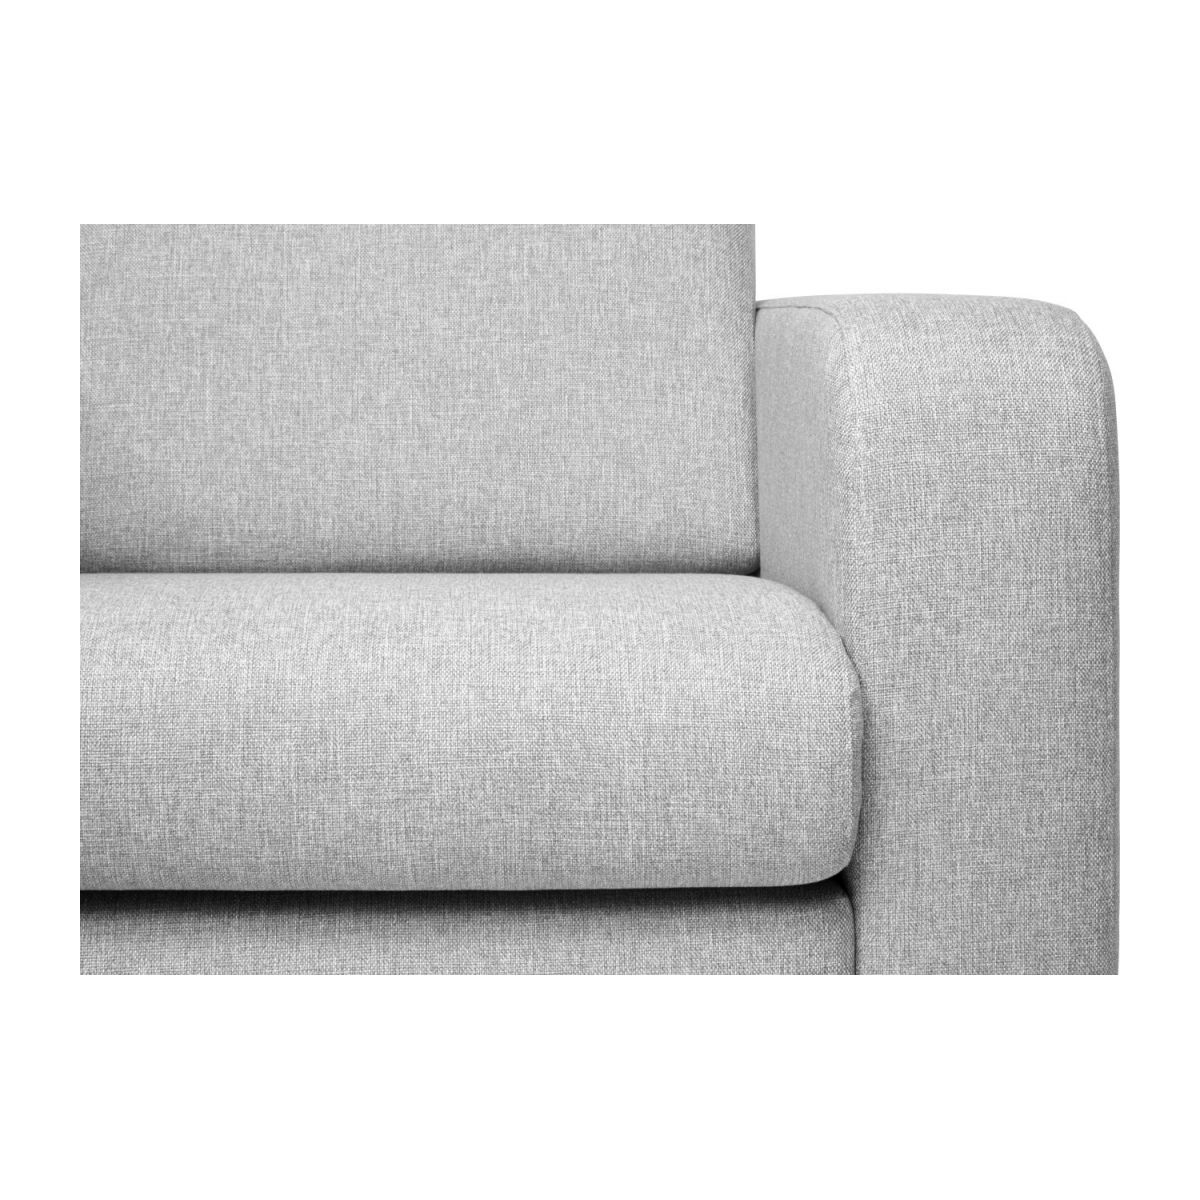 3-seater fabric sofa n°7